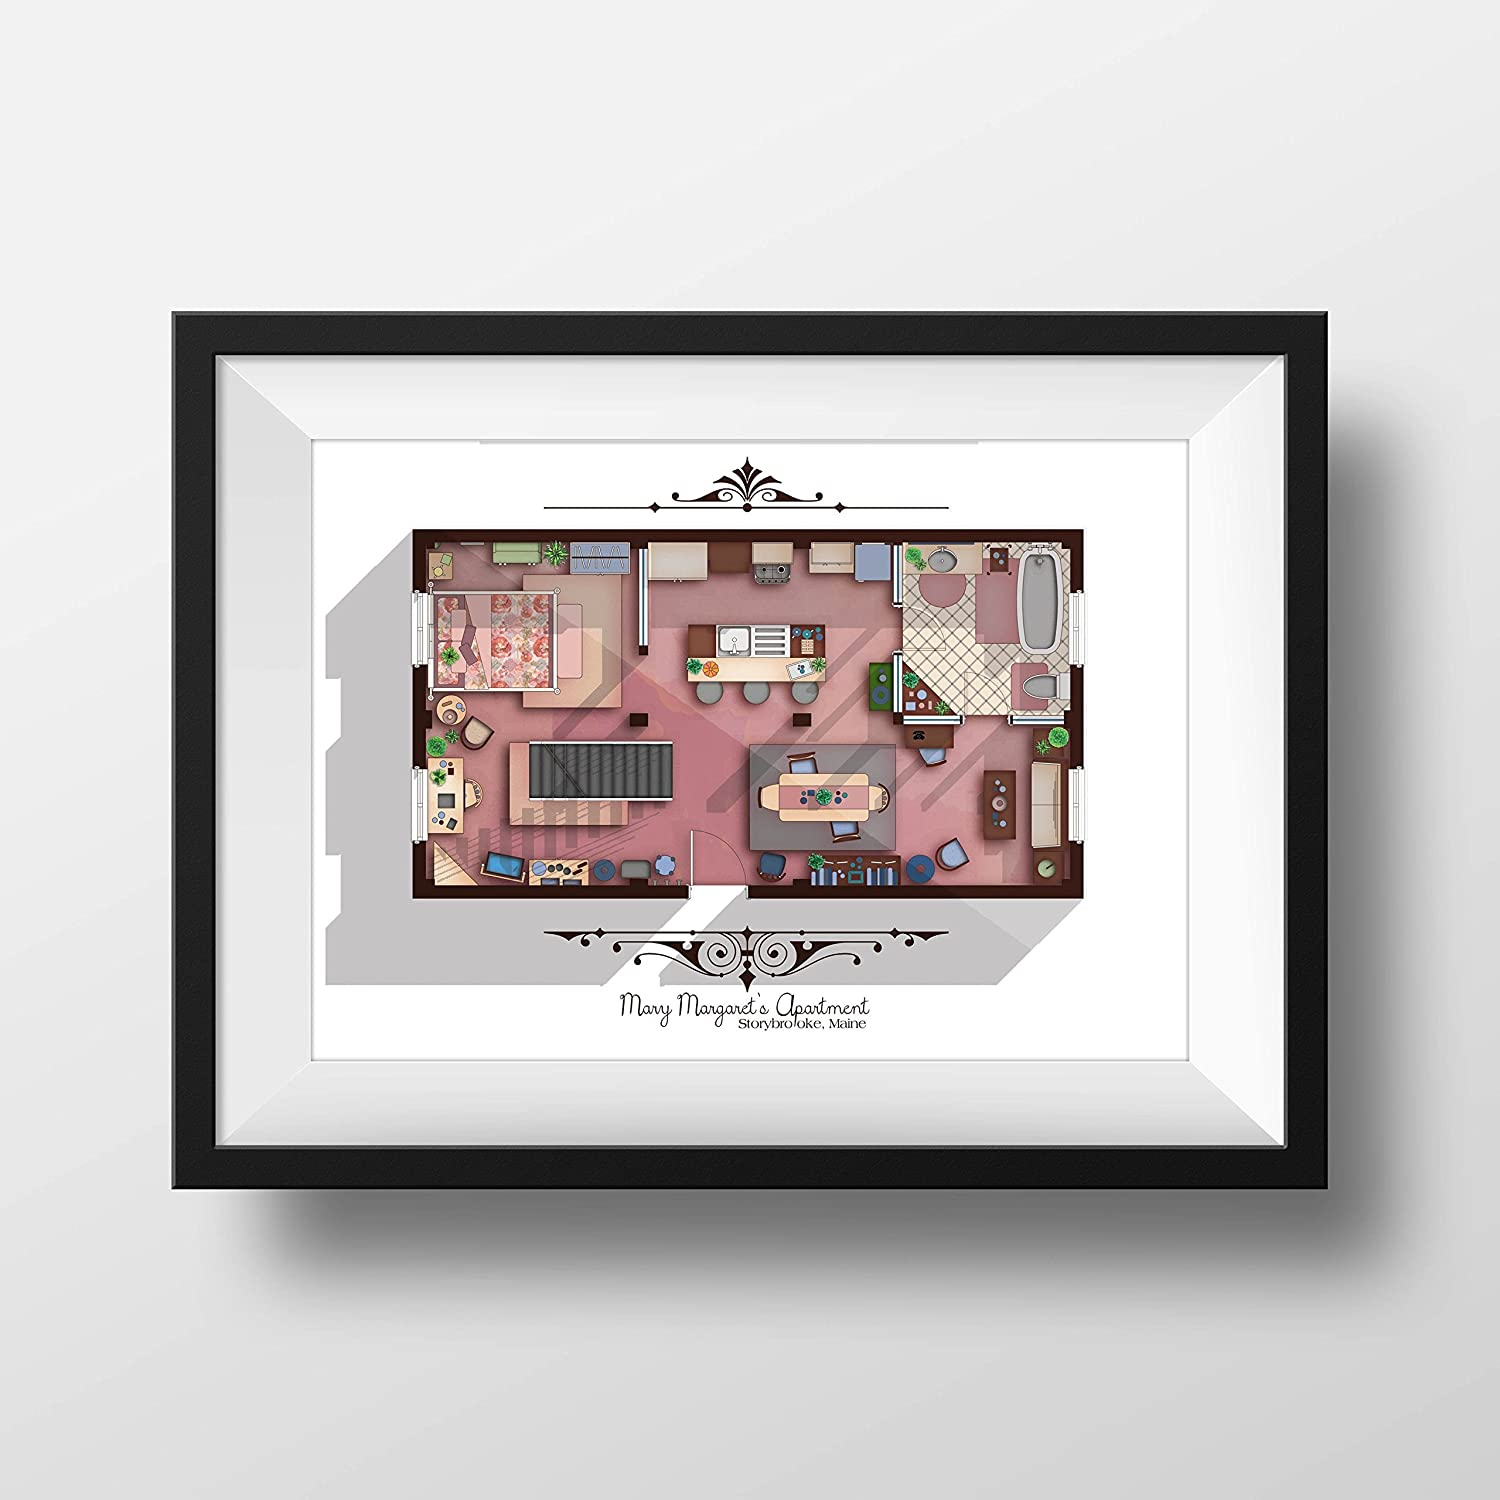 Amazon Com Once Upon A Time Tv Show Apartment Floor Plan Mary Margaret S Apartment Layout Mary Margaret And Emma Swan Apartment Storybrooke Maine Ouat Handmade